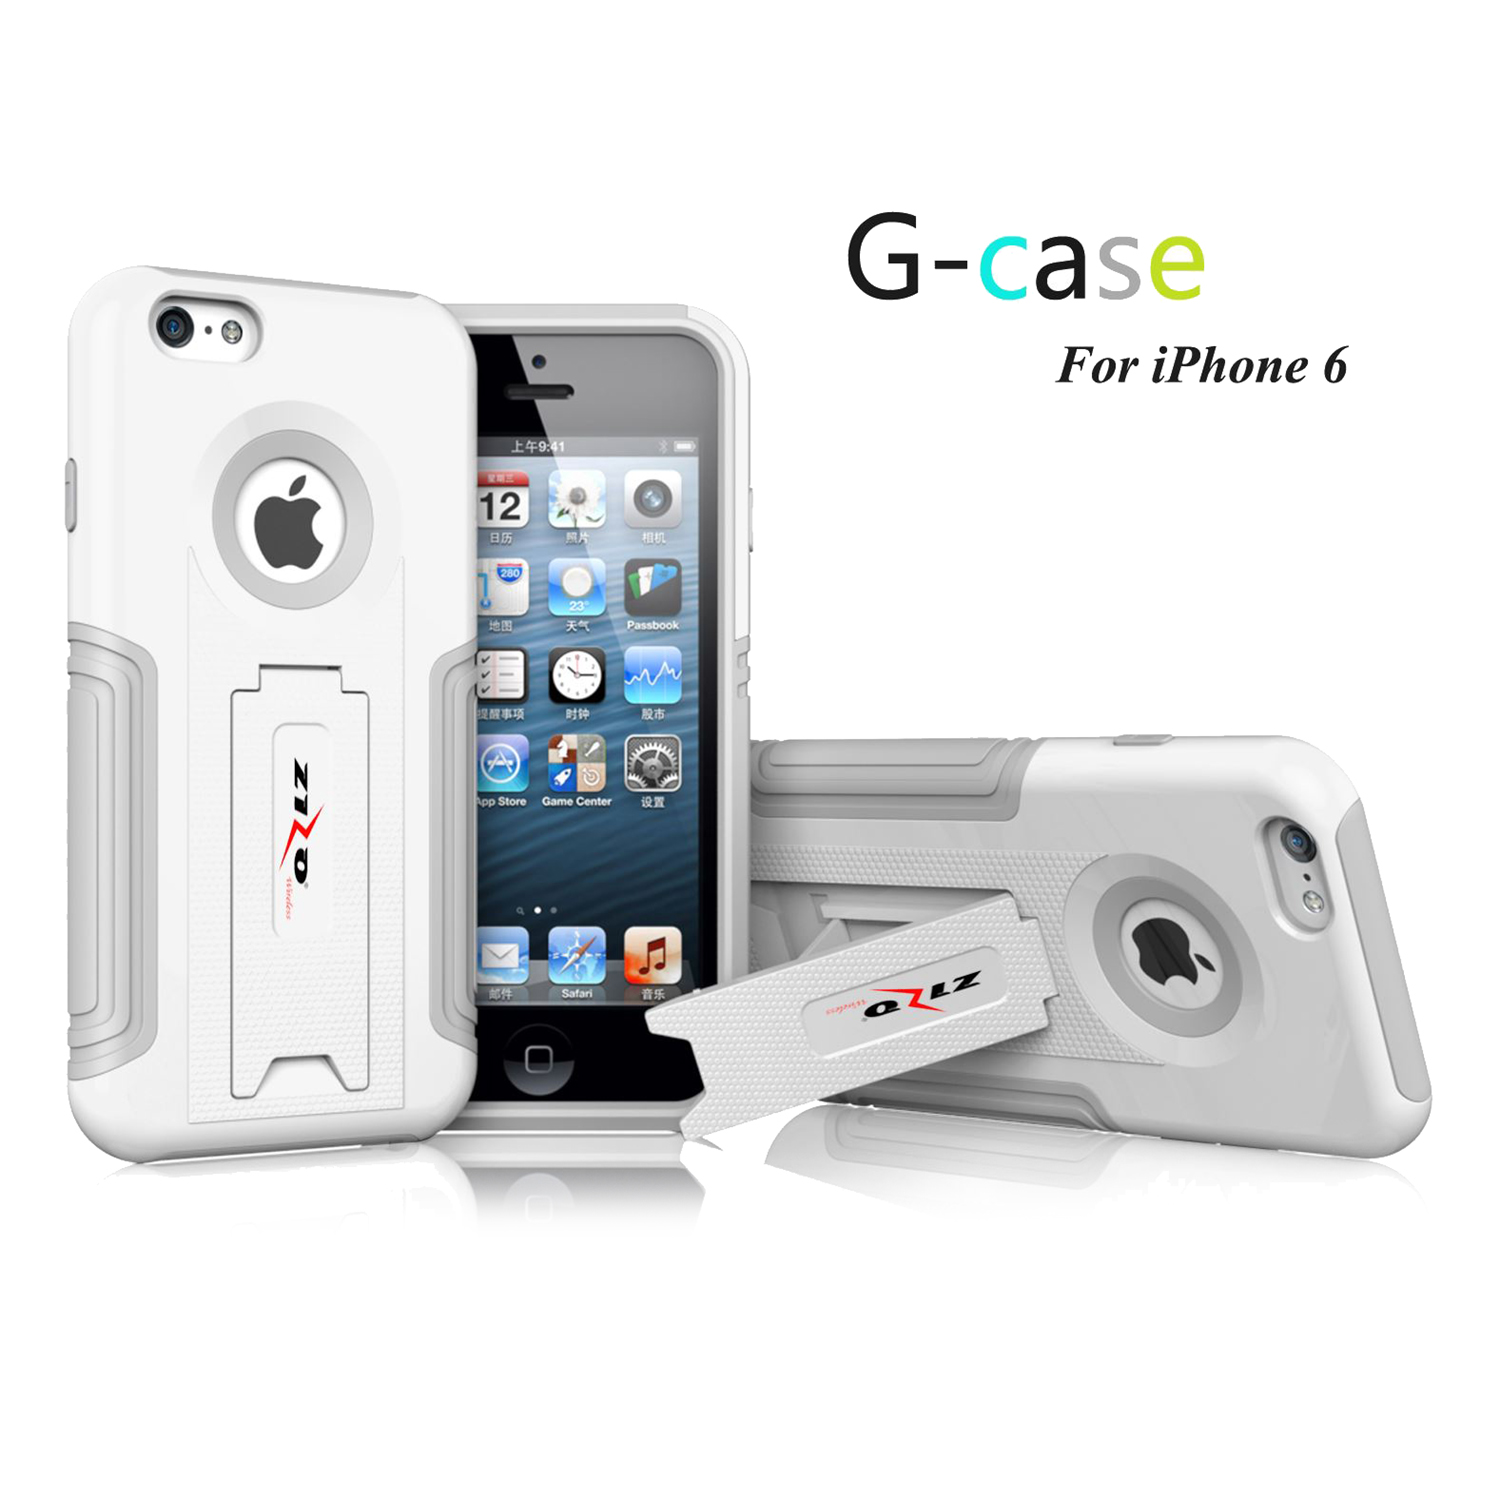 For iPhone 6 - GCASE PC + Gray TPU Combo Cover w/ Kickstand - White HYB